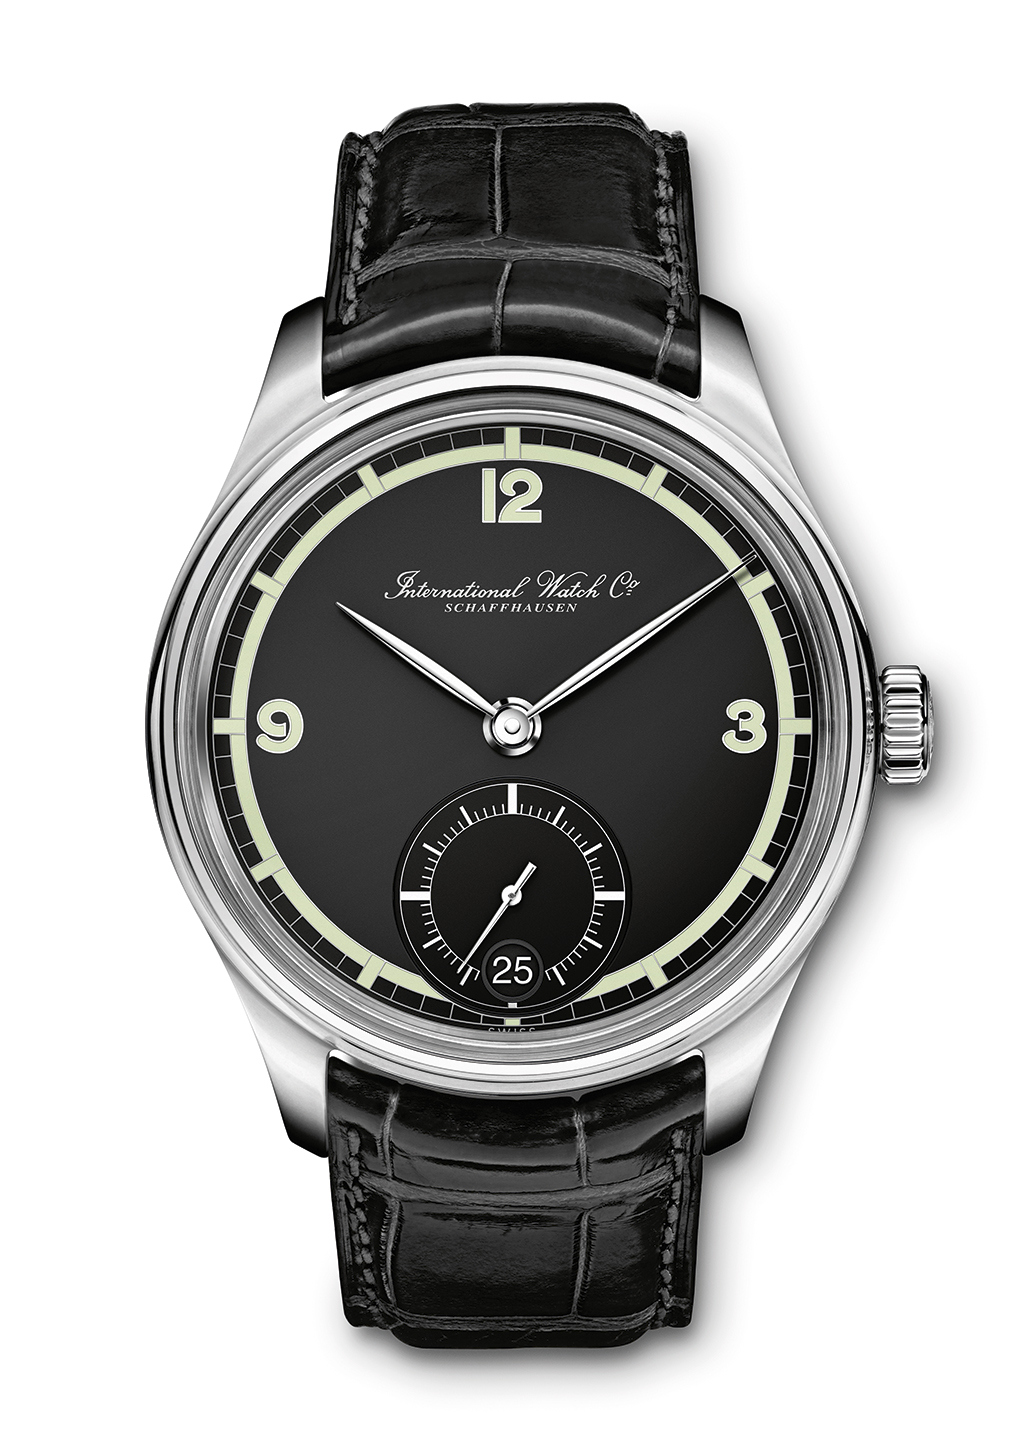 01_IWC_PG-HW-8-Days-Edition-75th-Anniversary_IW510205_front_high